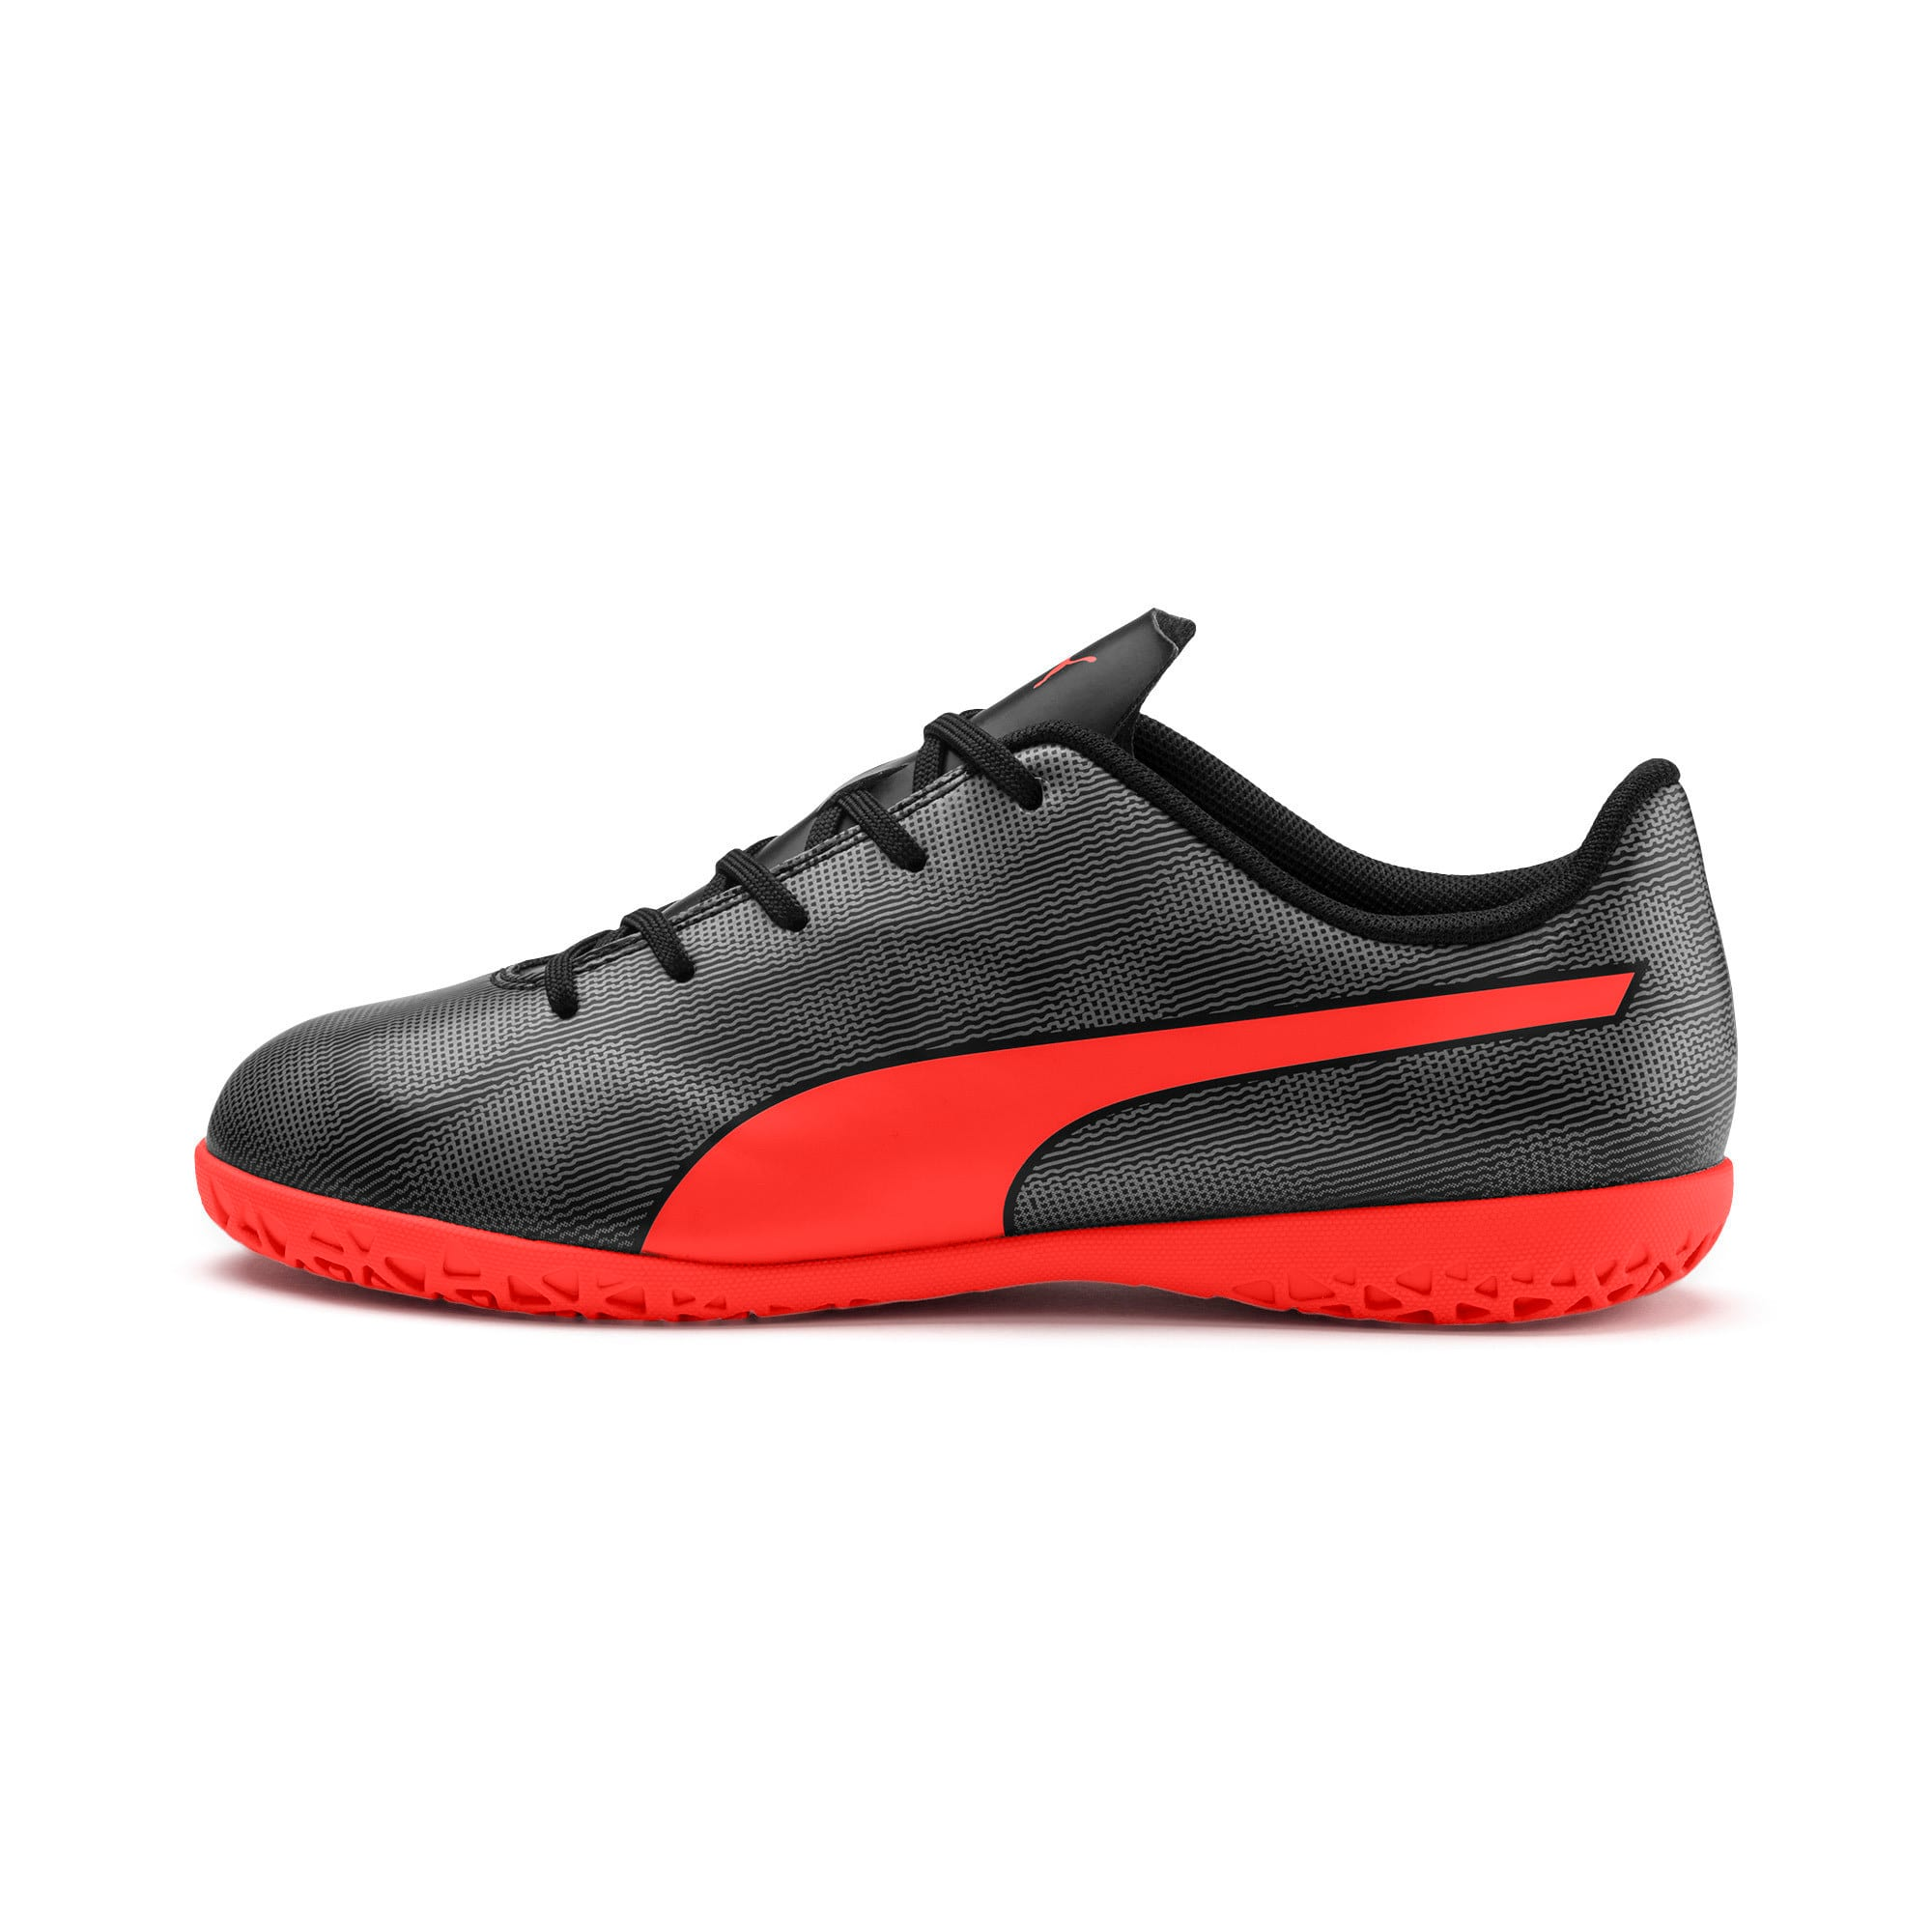 Thumbnail 1 of Rapido IT Youth Football Boots, Black-Nrgy Red-Aged Silver, medium-IND